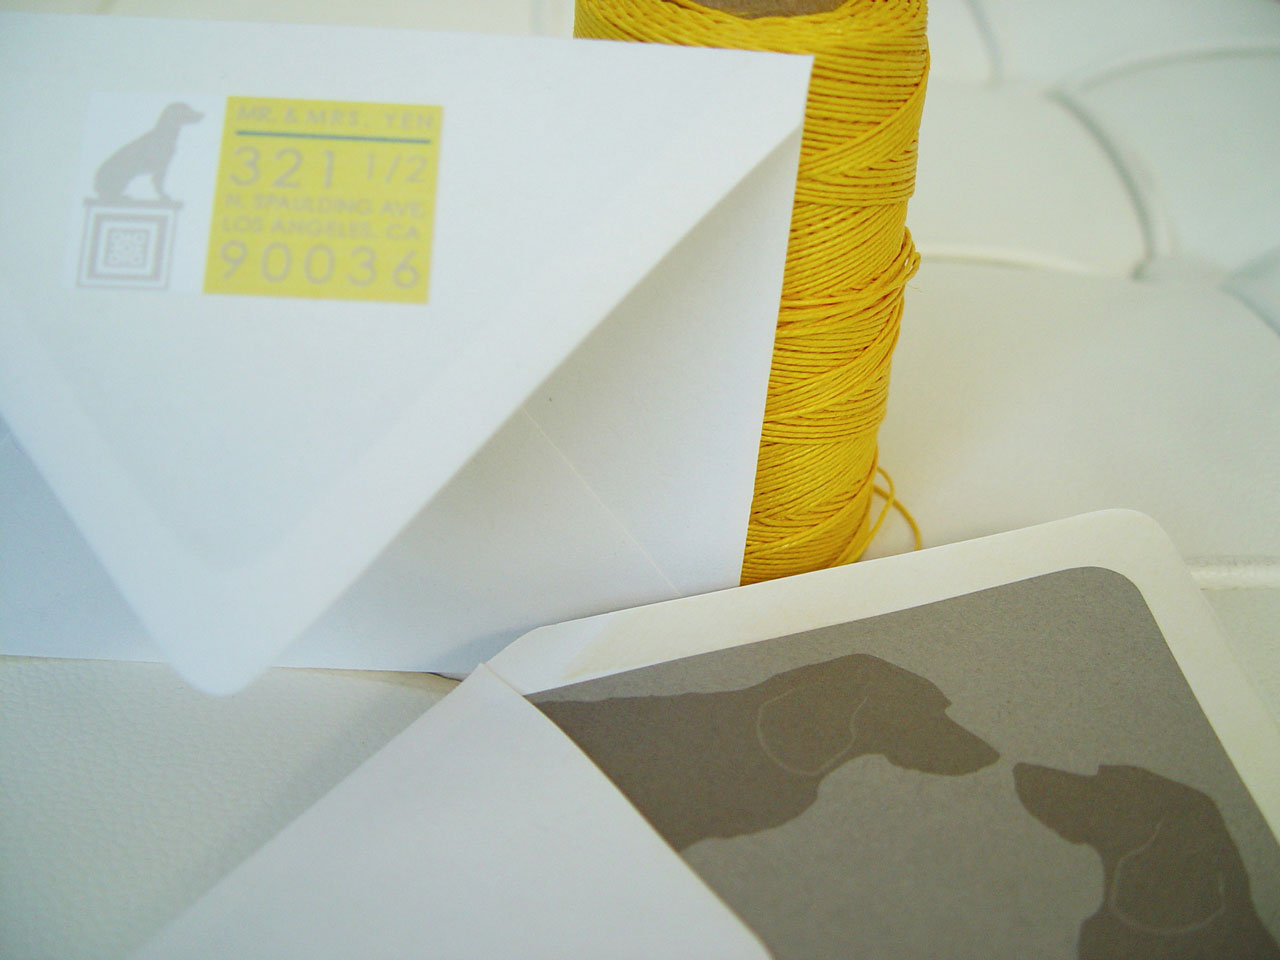 K&C Regal Beagle Envelopes